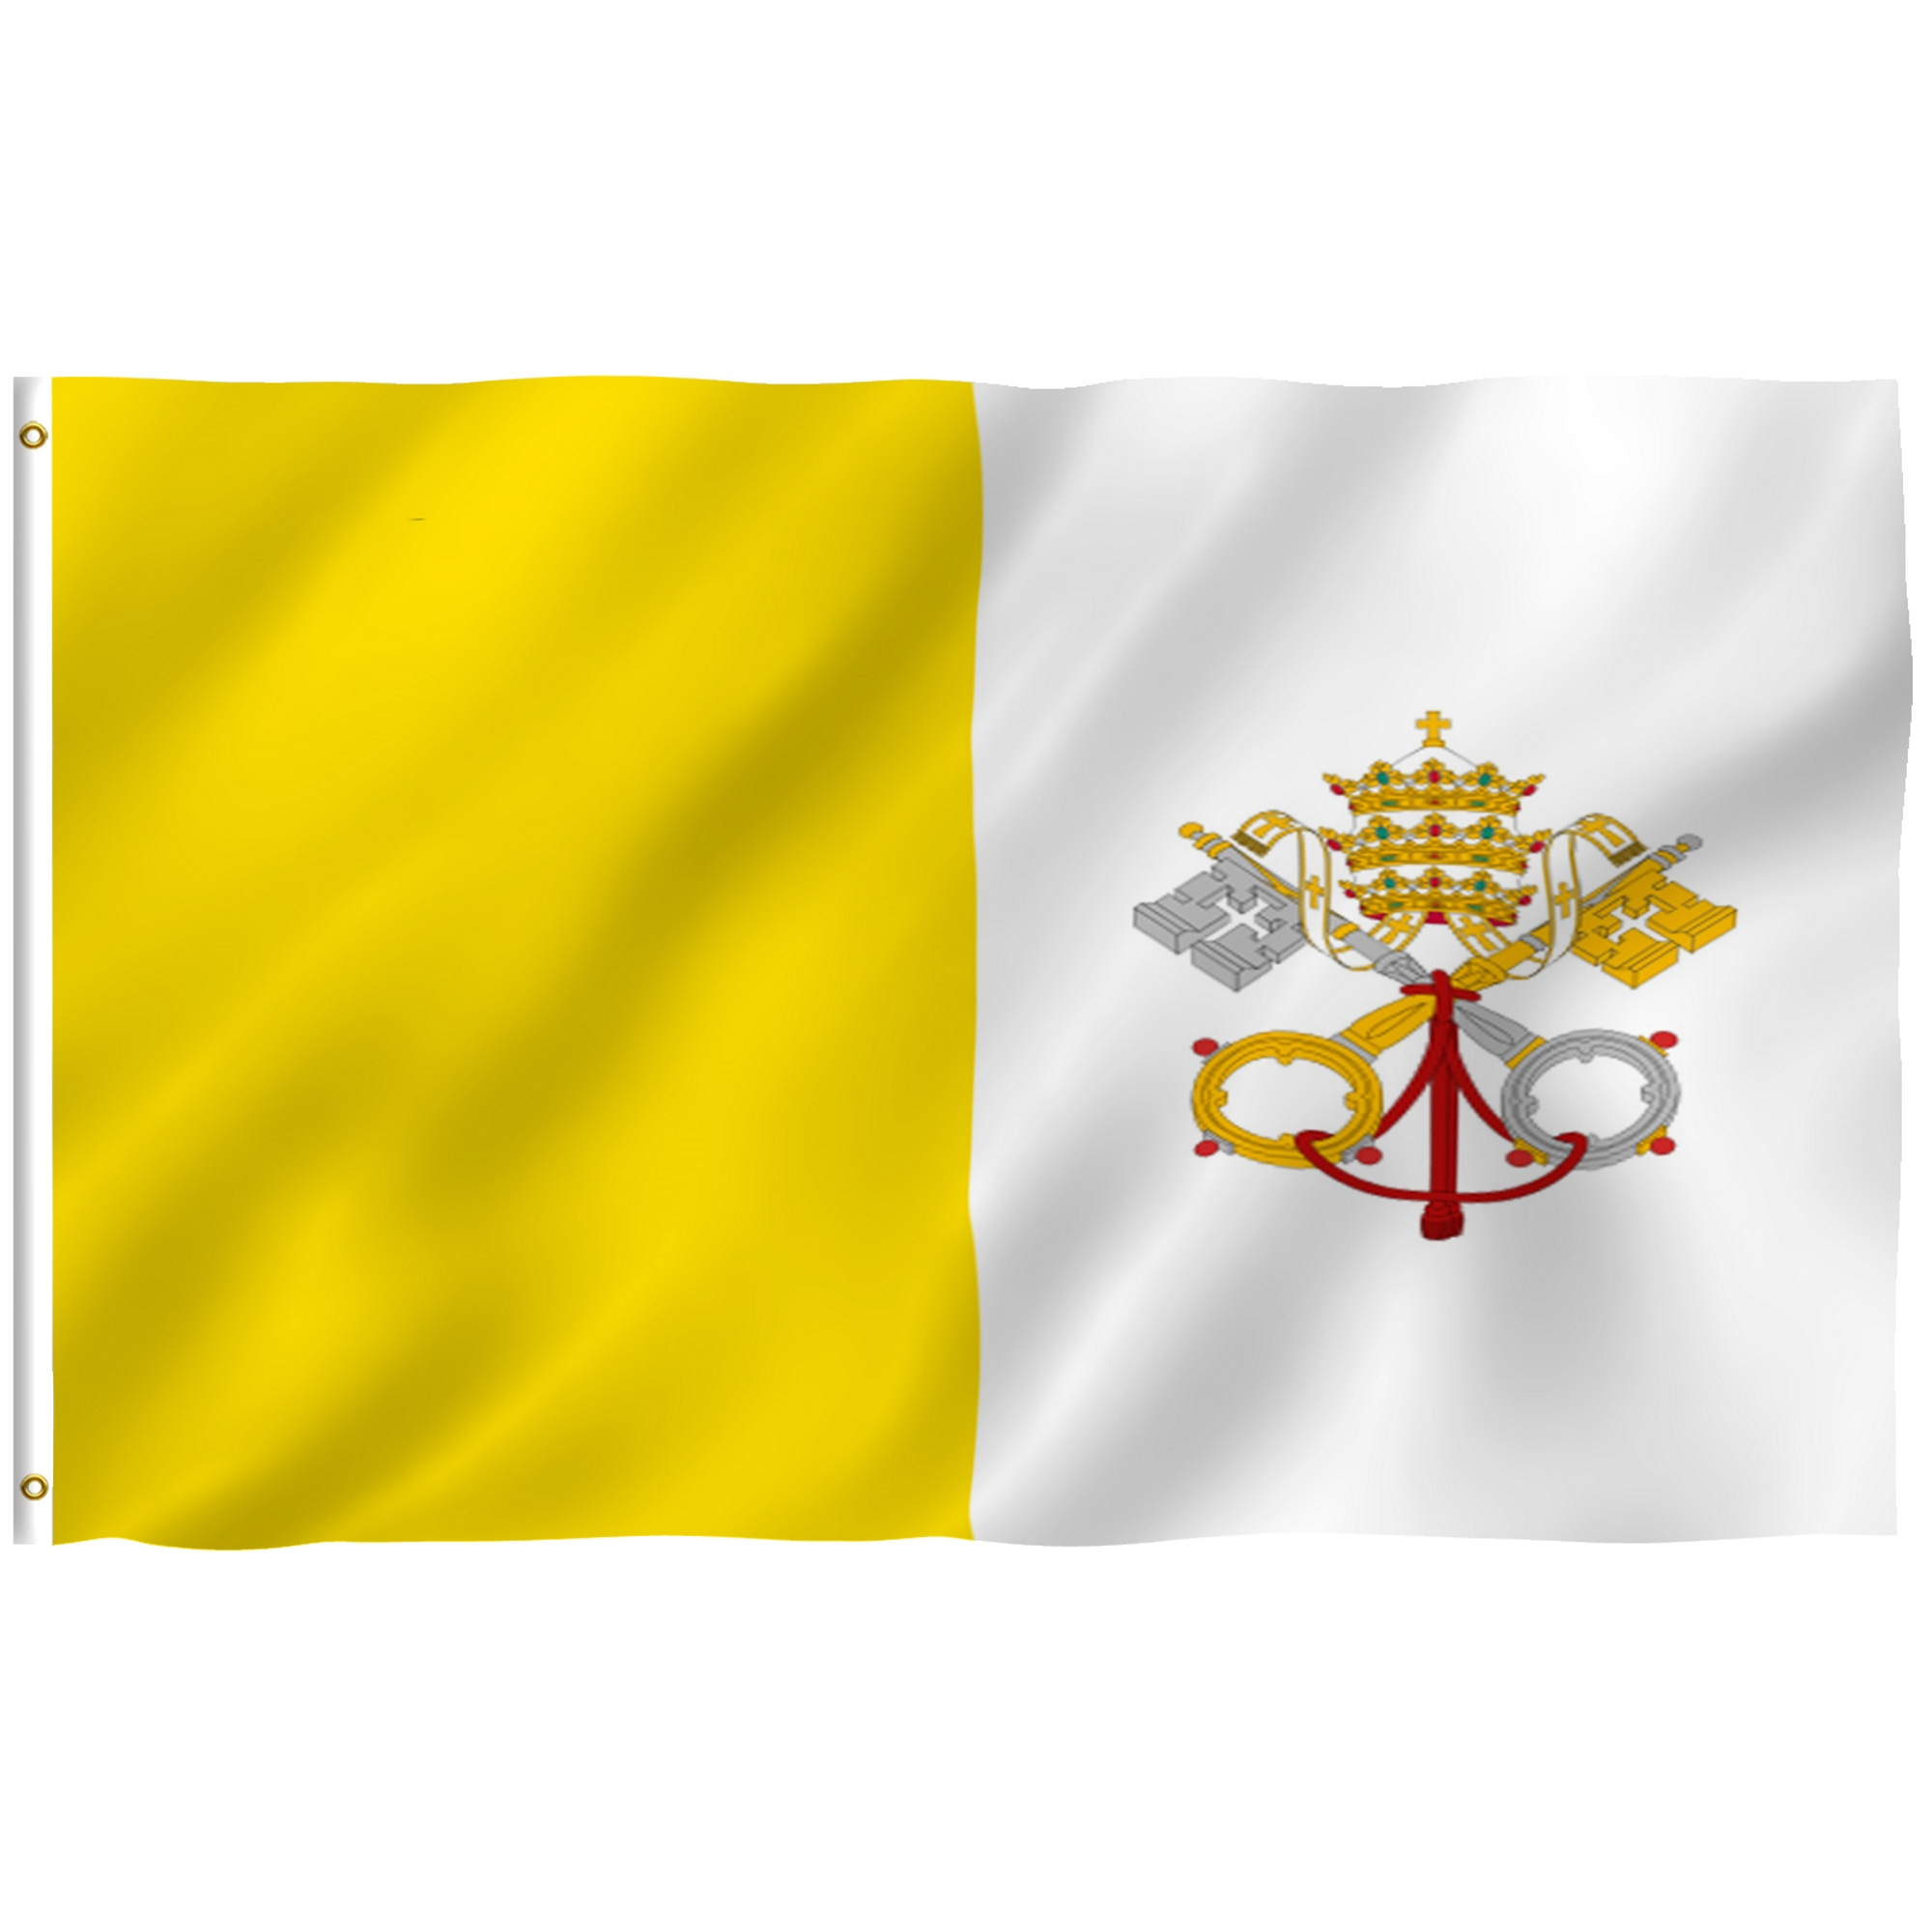 ANLEY [Fly Breeze] 3x5 Foot Vatican Flag Vivid Color and UV Fade Resistant... by Anley